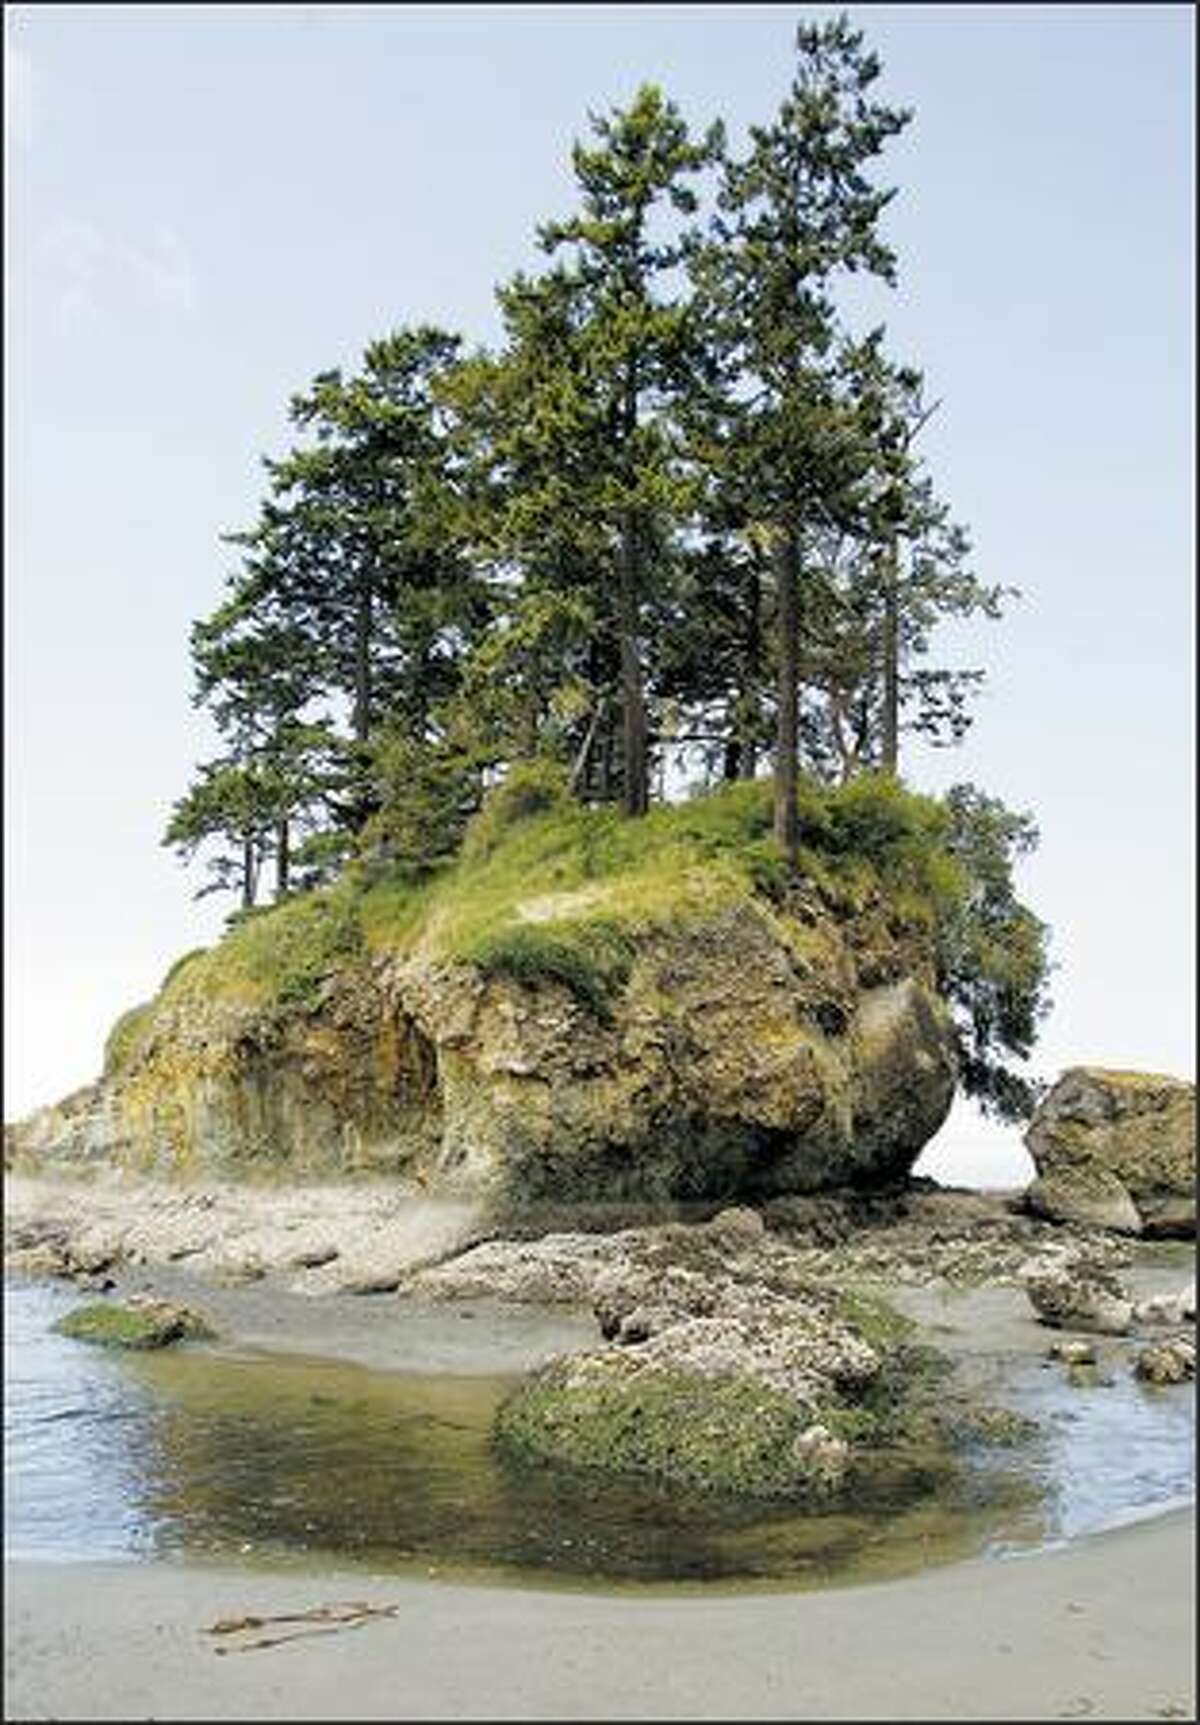 Low tide at Salt Creek County Park reveals some of the best tide pools on the Washington side of the Strait of Juan de Fuca. The park -- the crown jewel of Clallam County -- has more than a mile of stunning rocky shore. The park is a reserve, so don't take anything away.